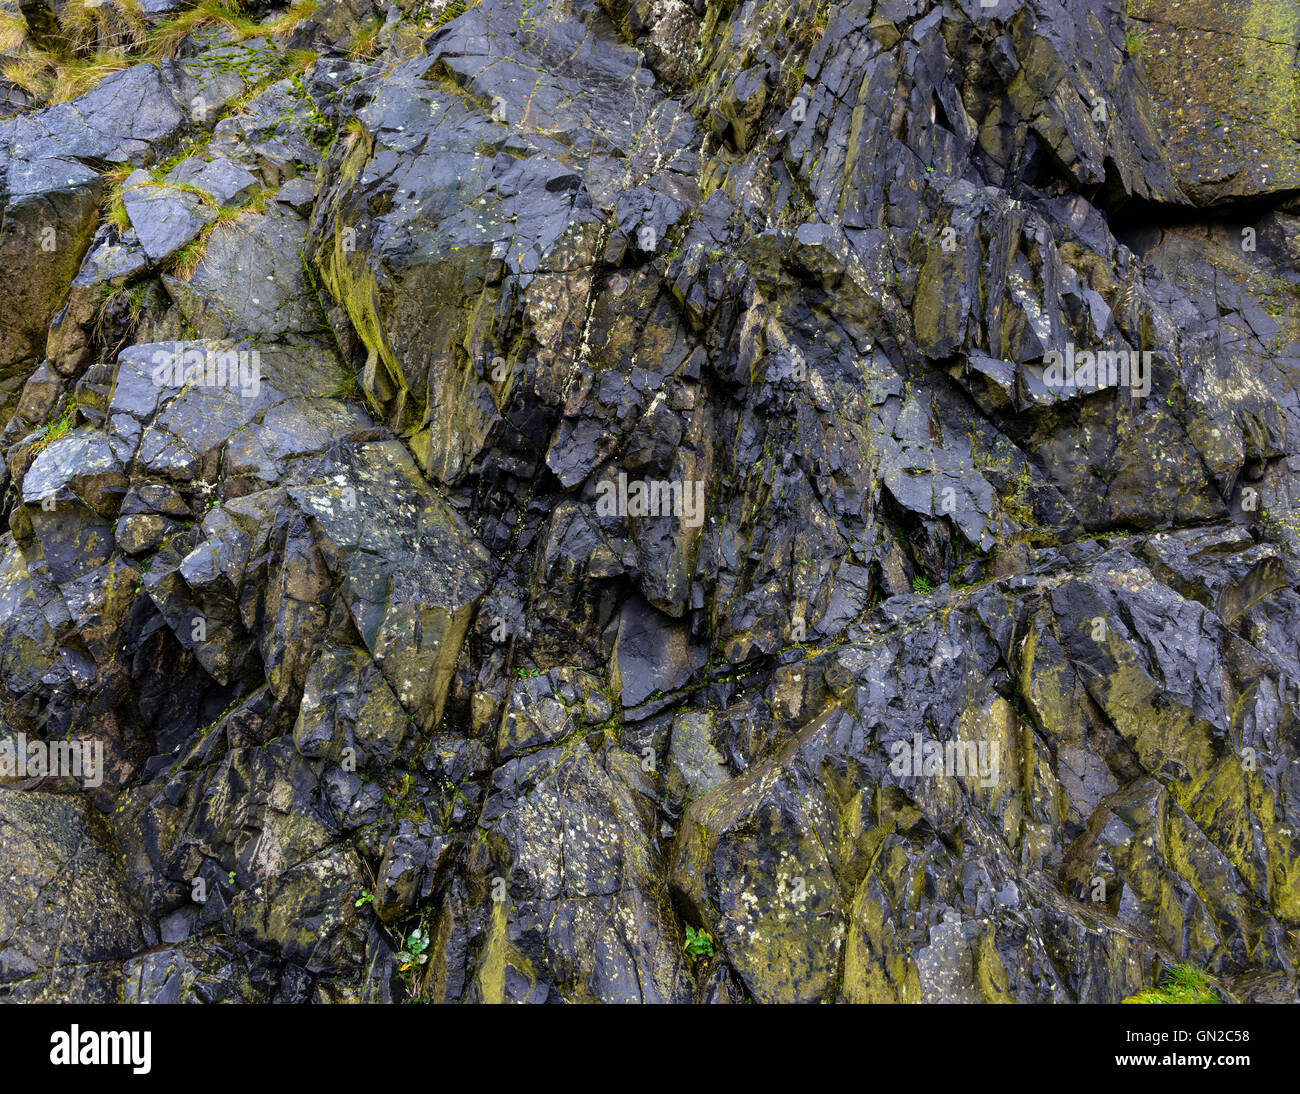 Black rock texture and green moss - Stock Image